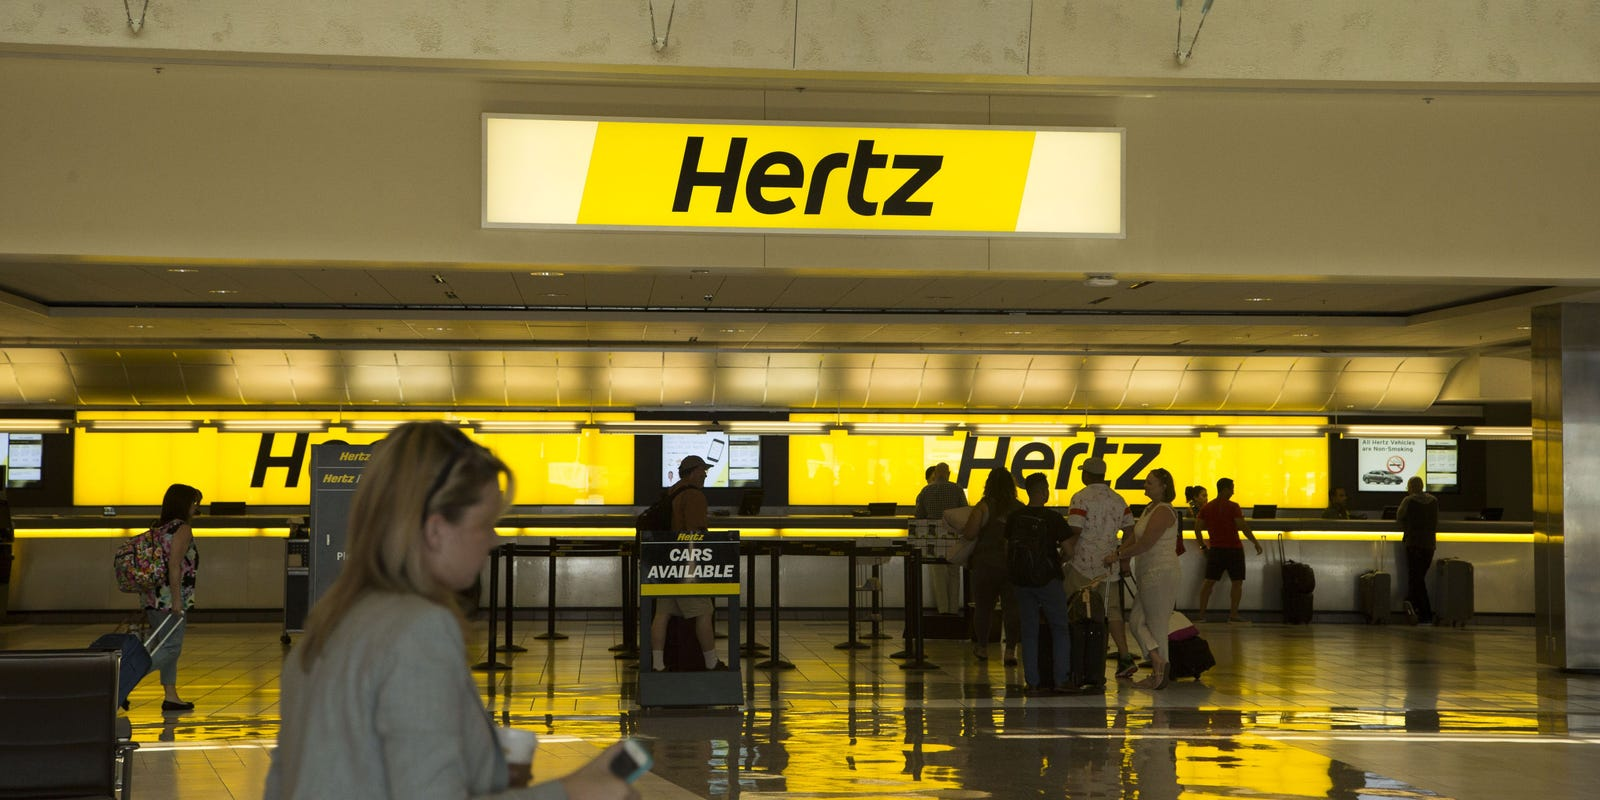 TIPS N' TRICKS: Pro Tip: How to book a one-way Hertz car rental from $10/day!